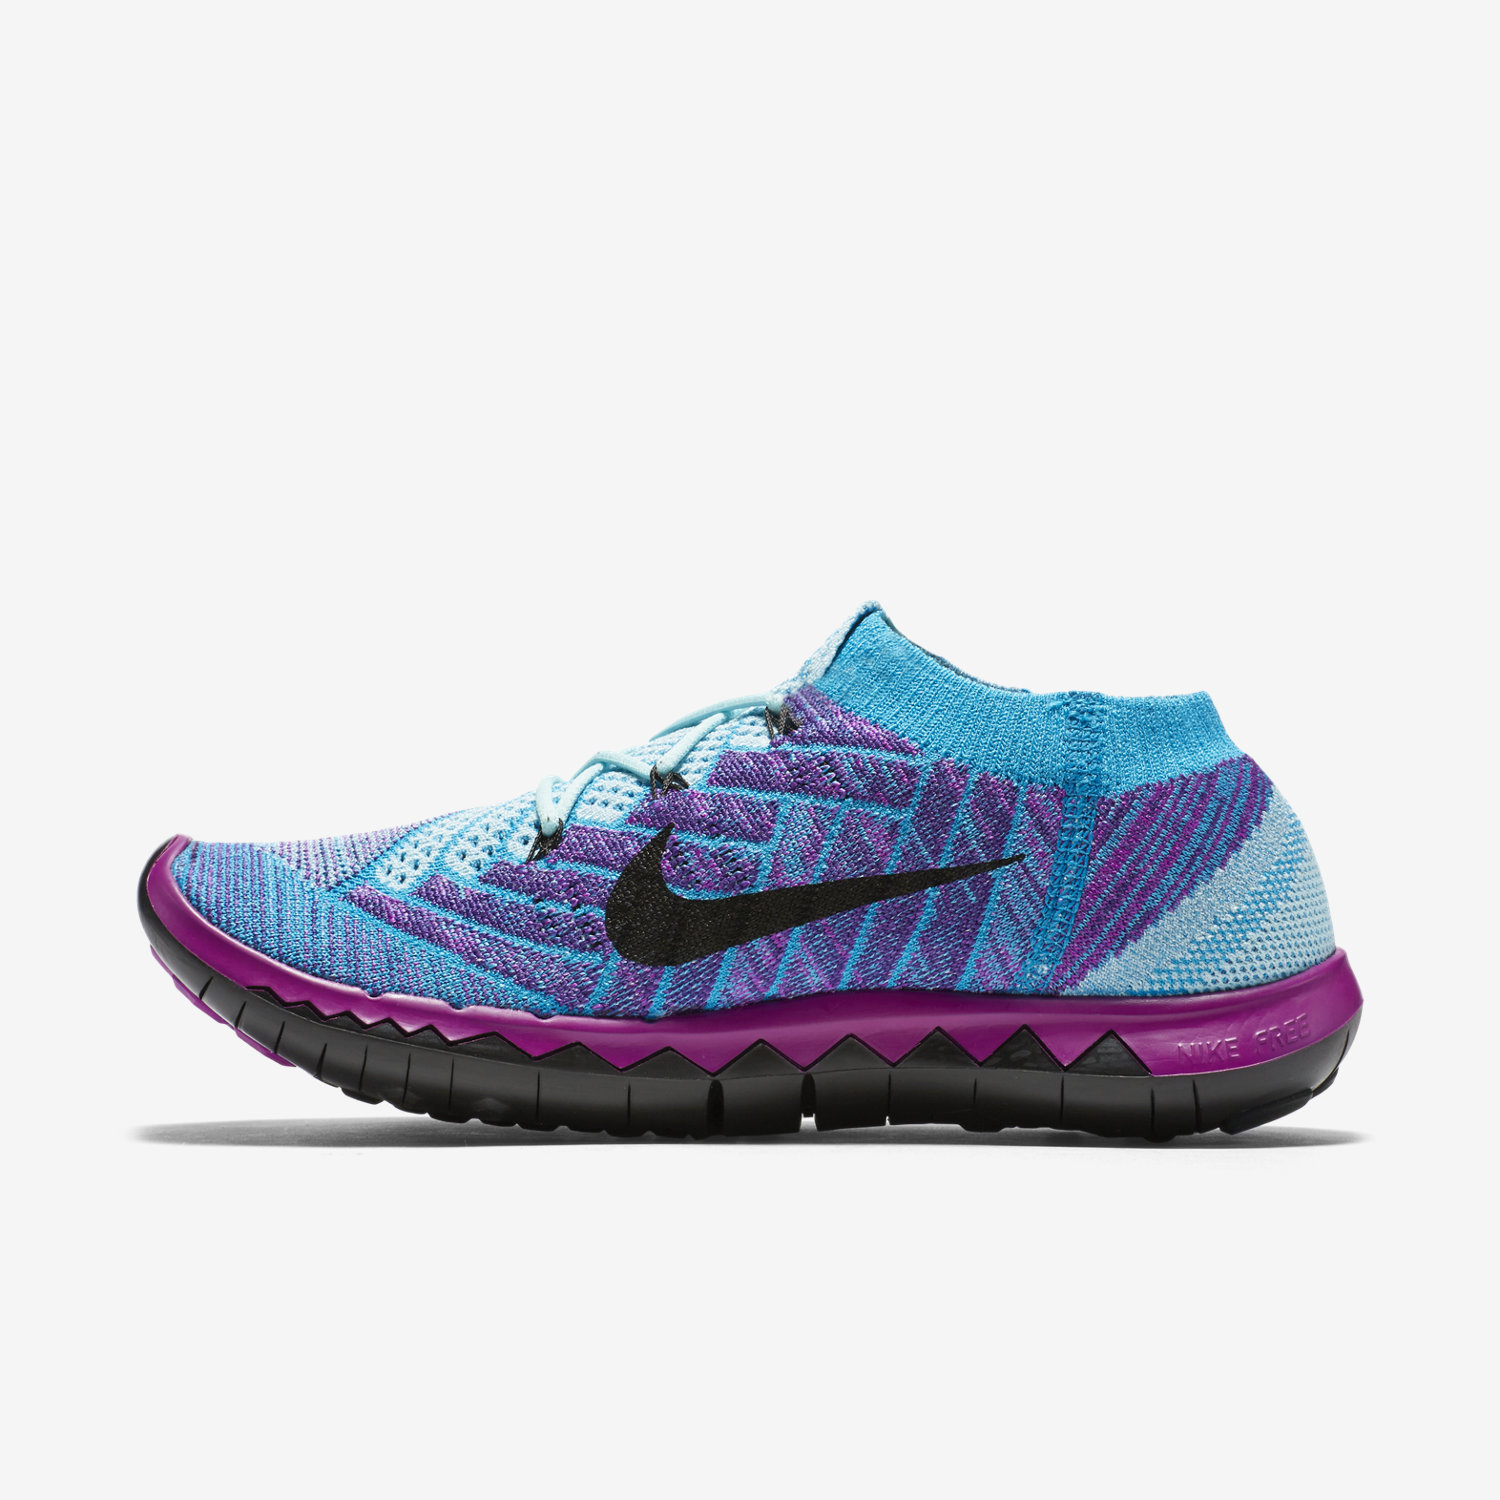 nike free 3 0 flyknit. Black Bedroom Furniture Sets. Home Design Ideas